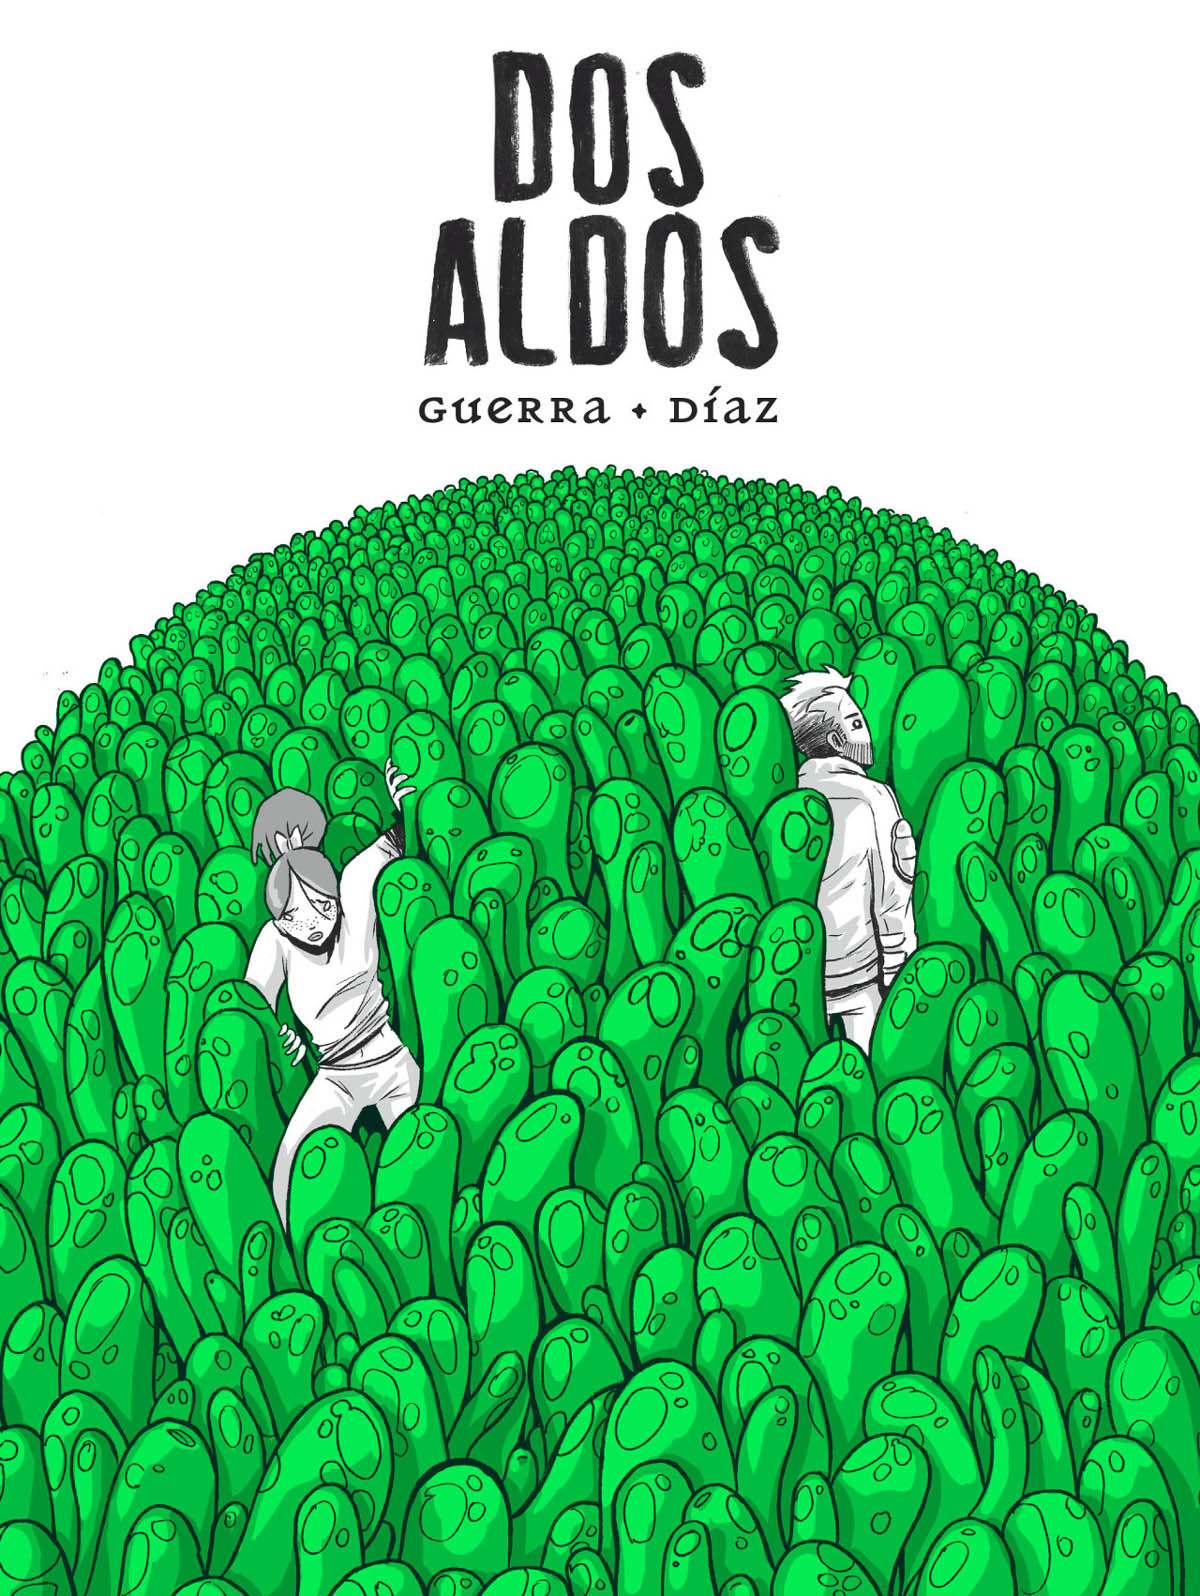 dos aldos award winning maga illustration by guerra diaz